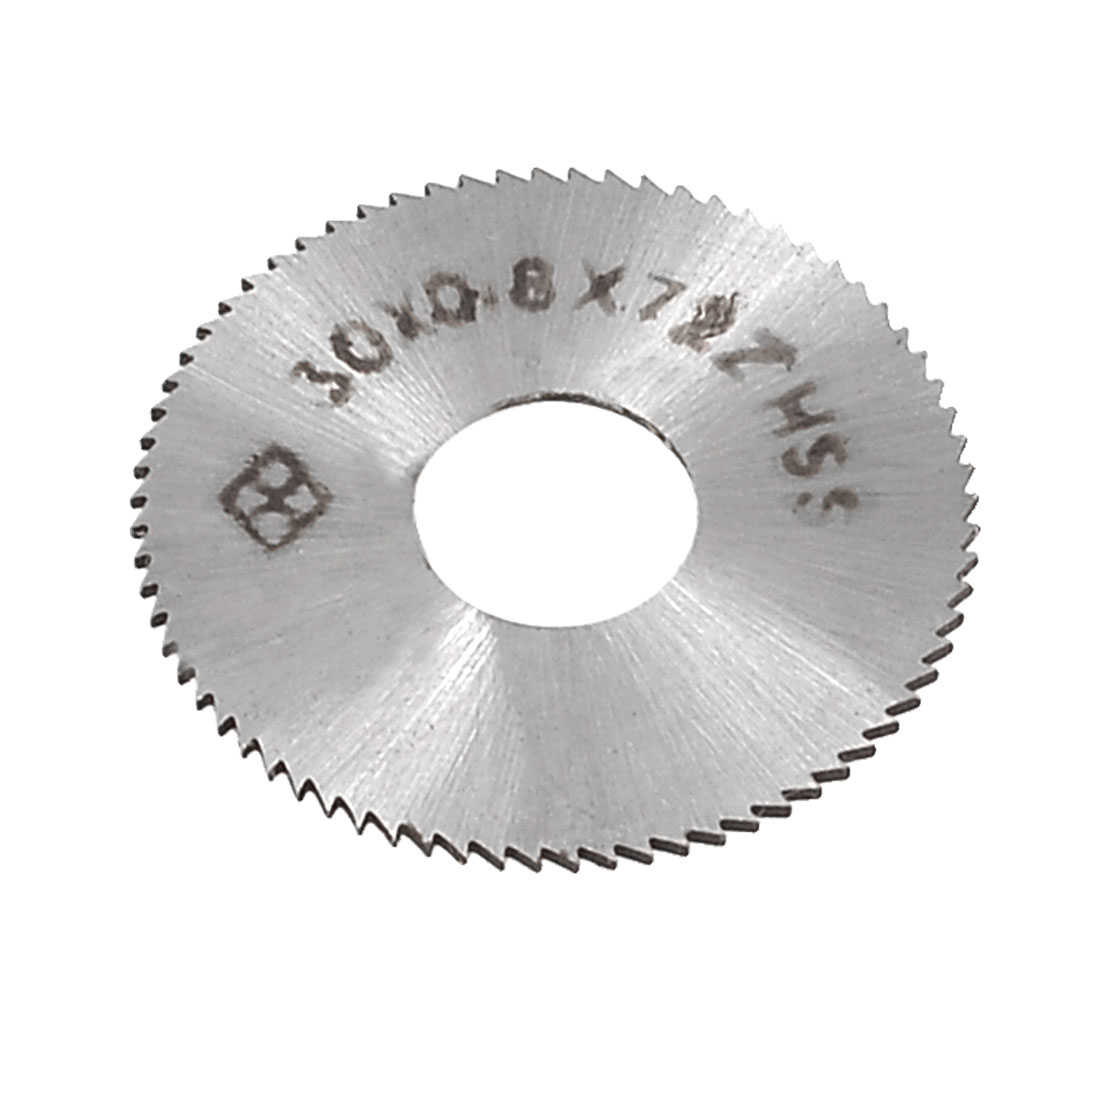 Unique Bargains 30mm x 0.8mm x 10mm 72T HSS Circle Slitting Saw Cutter